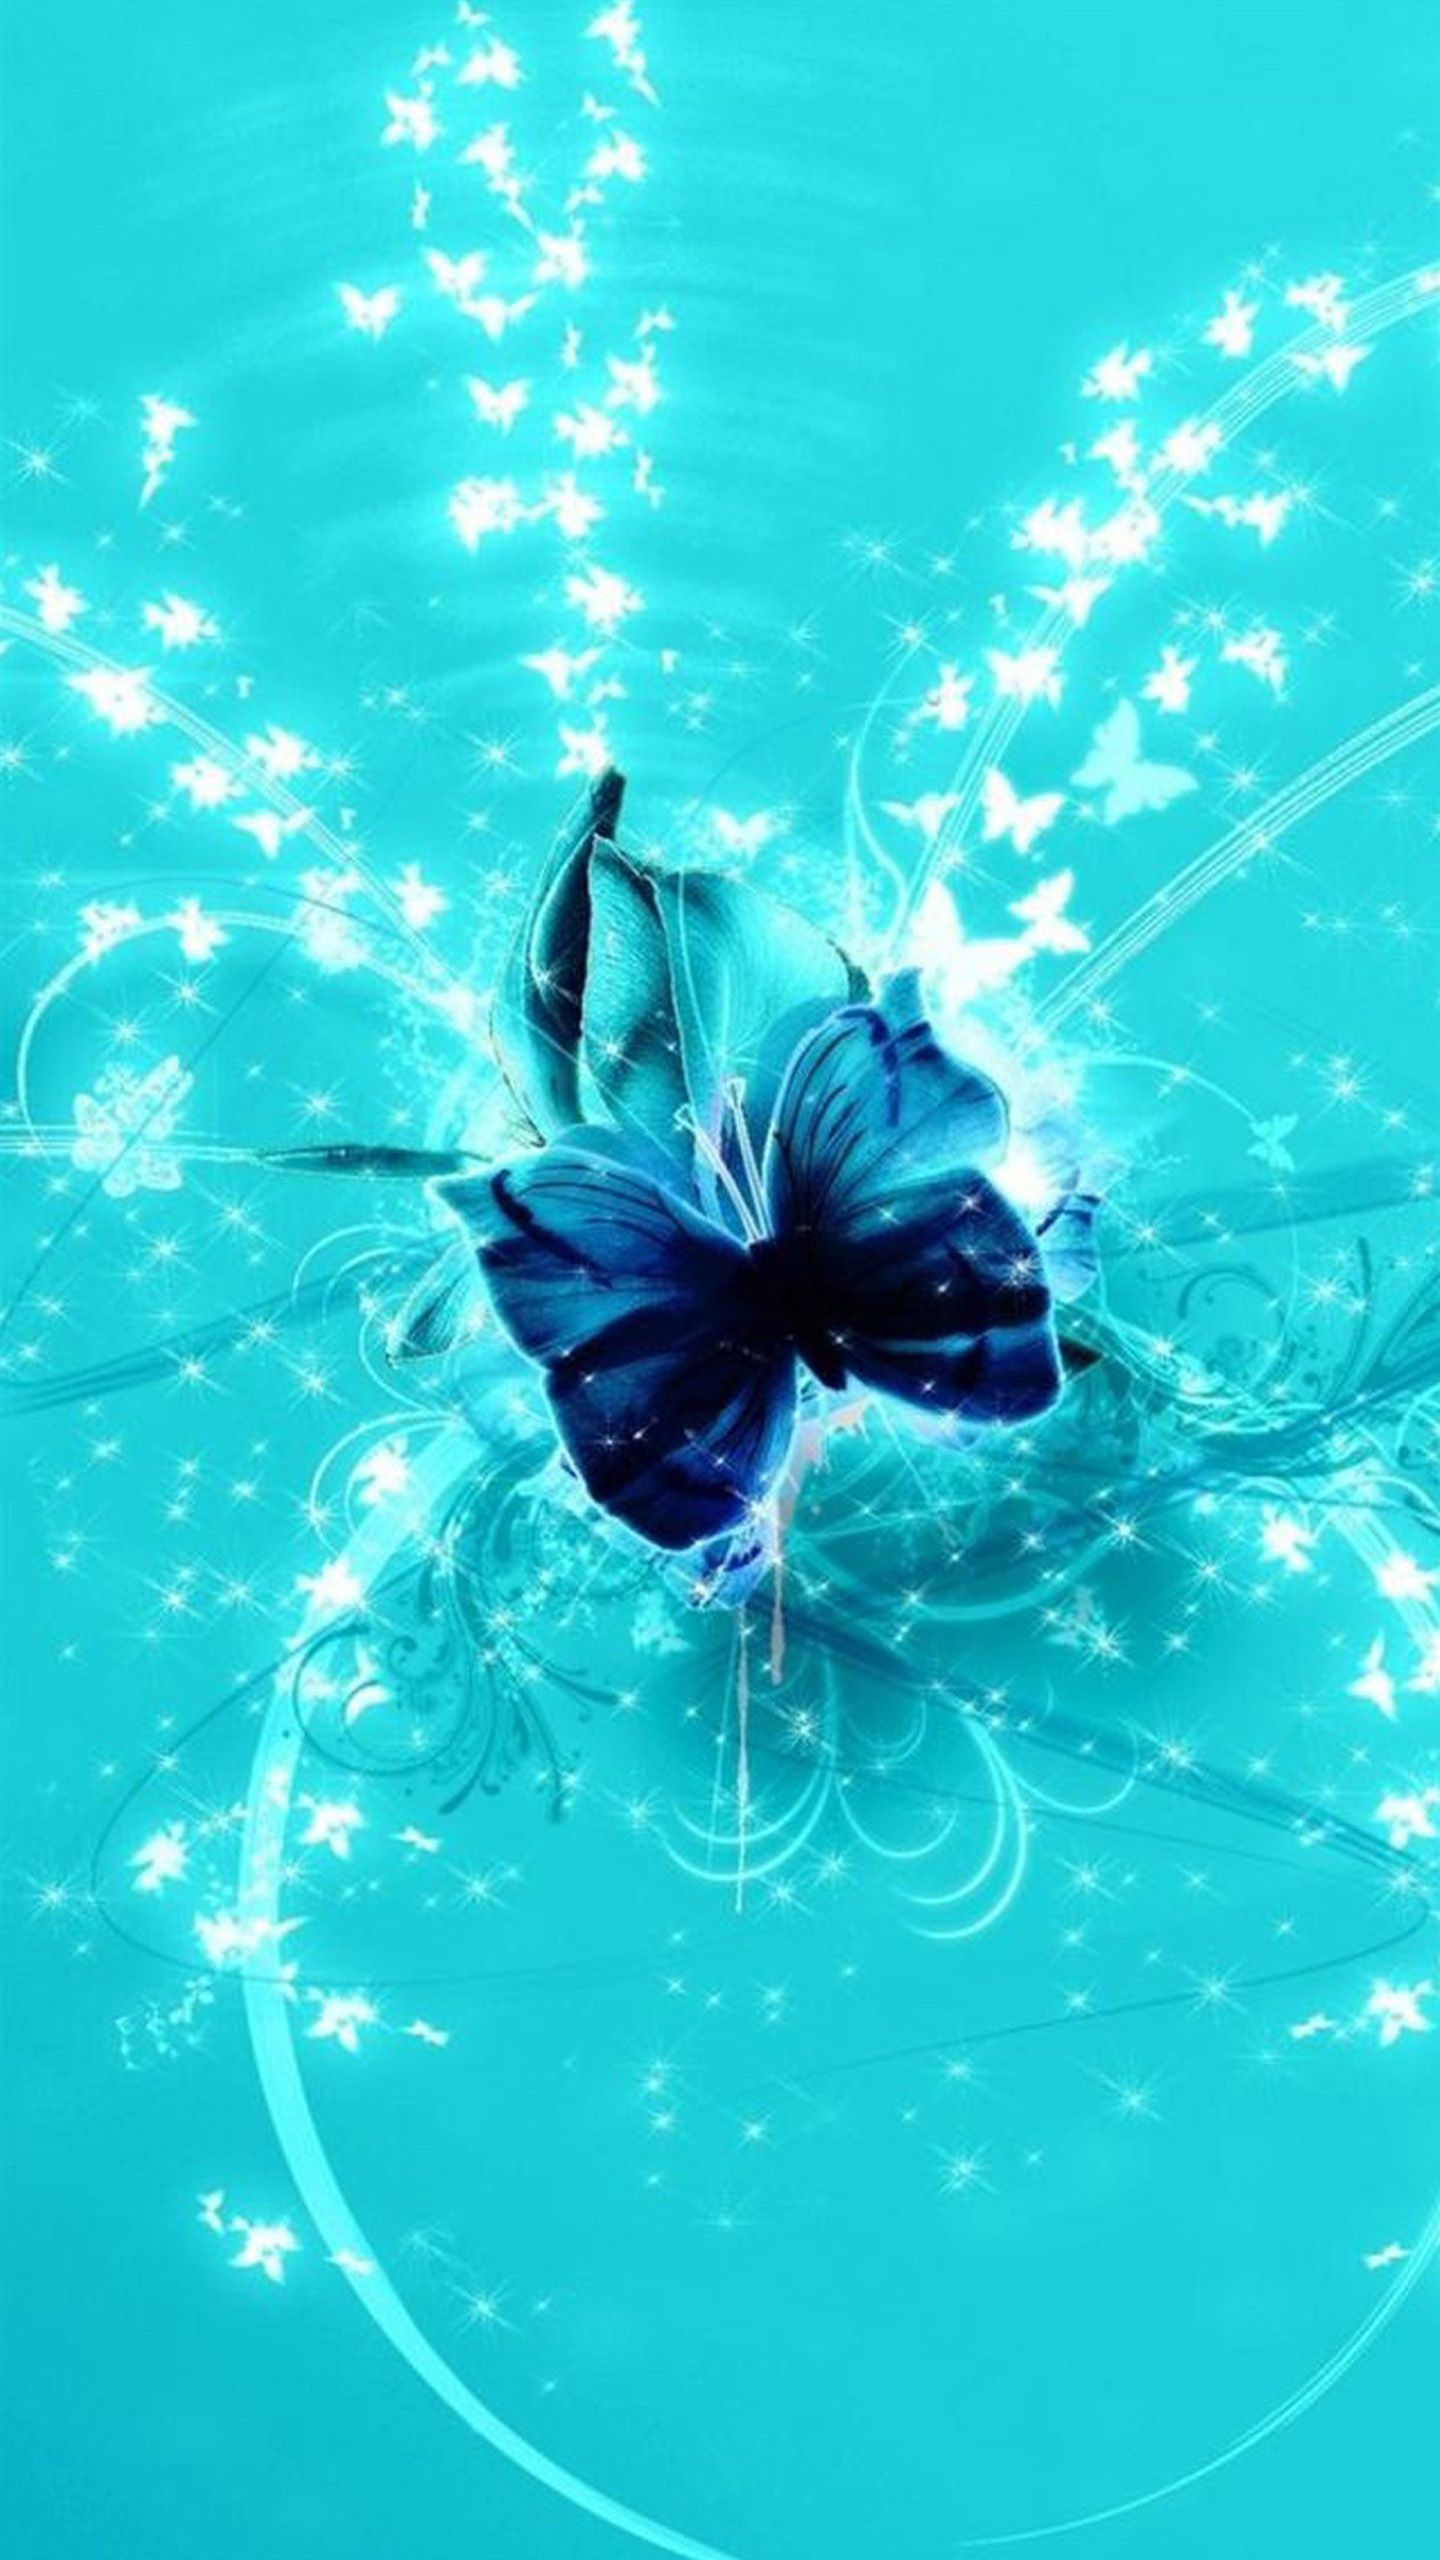 Nature Samsung Galaxy S6 Wallpapers 14 Blue Butterfly Wallpaper Butterfly Wallpaper Cute Disney Wallpaper